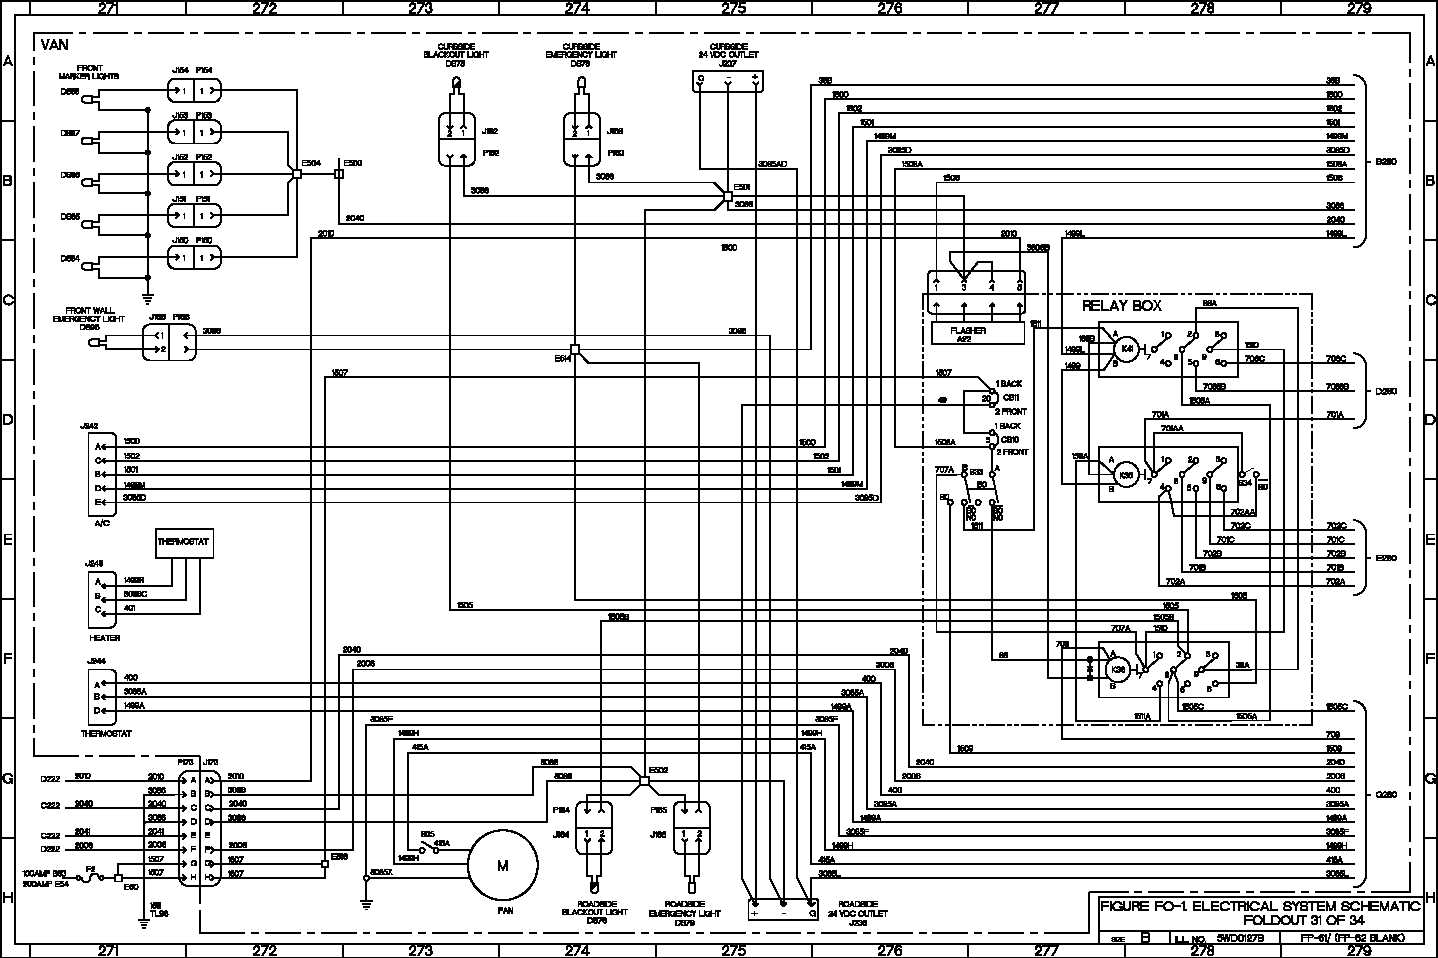 TM 9 2320 365 20 2_1351_1 electrical system schematic tm 9 2320 365 20 2_1351 wiring diagram for m1078 lmtv at fashall.co